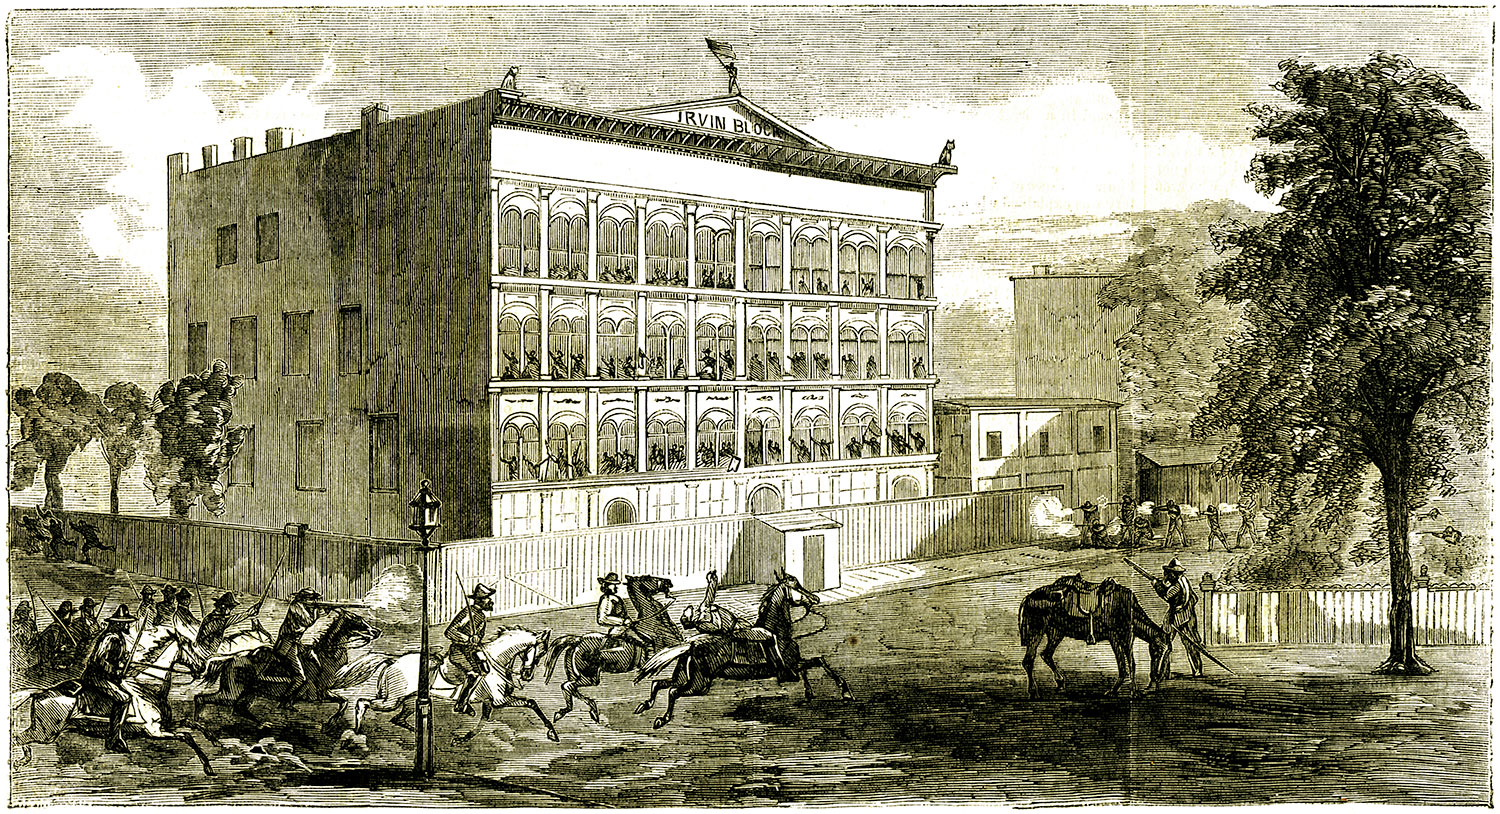 Irving Block Prison as pictured in the September 10, 1864, issue of Harper's Weekly.